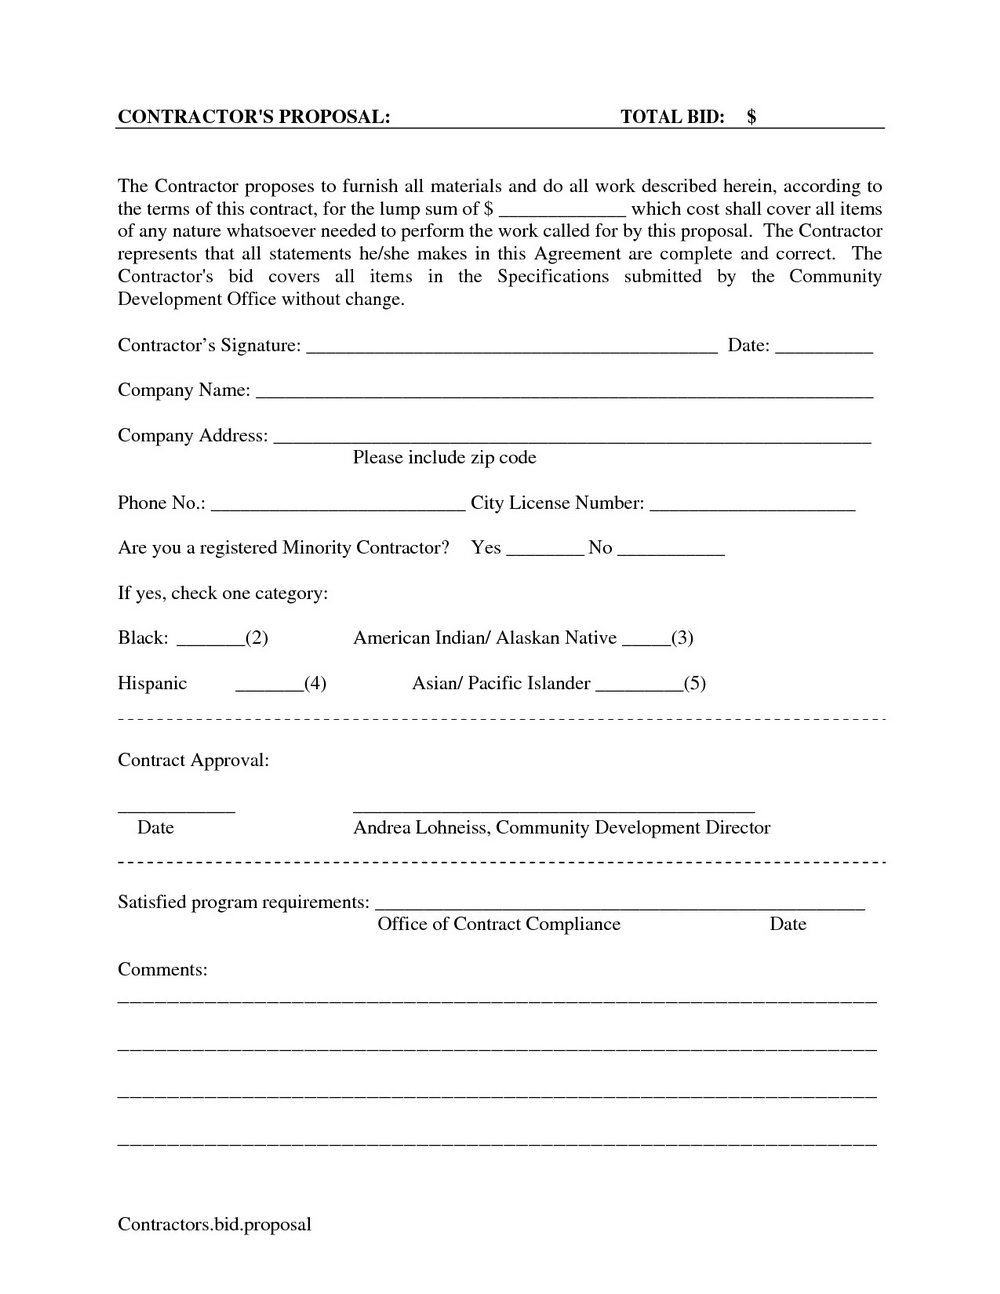 Construction Bid Proposal Template Pdf